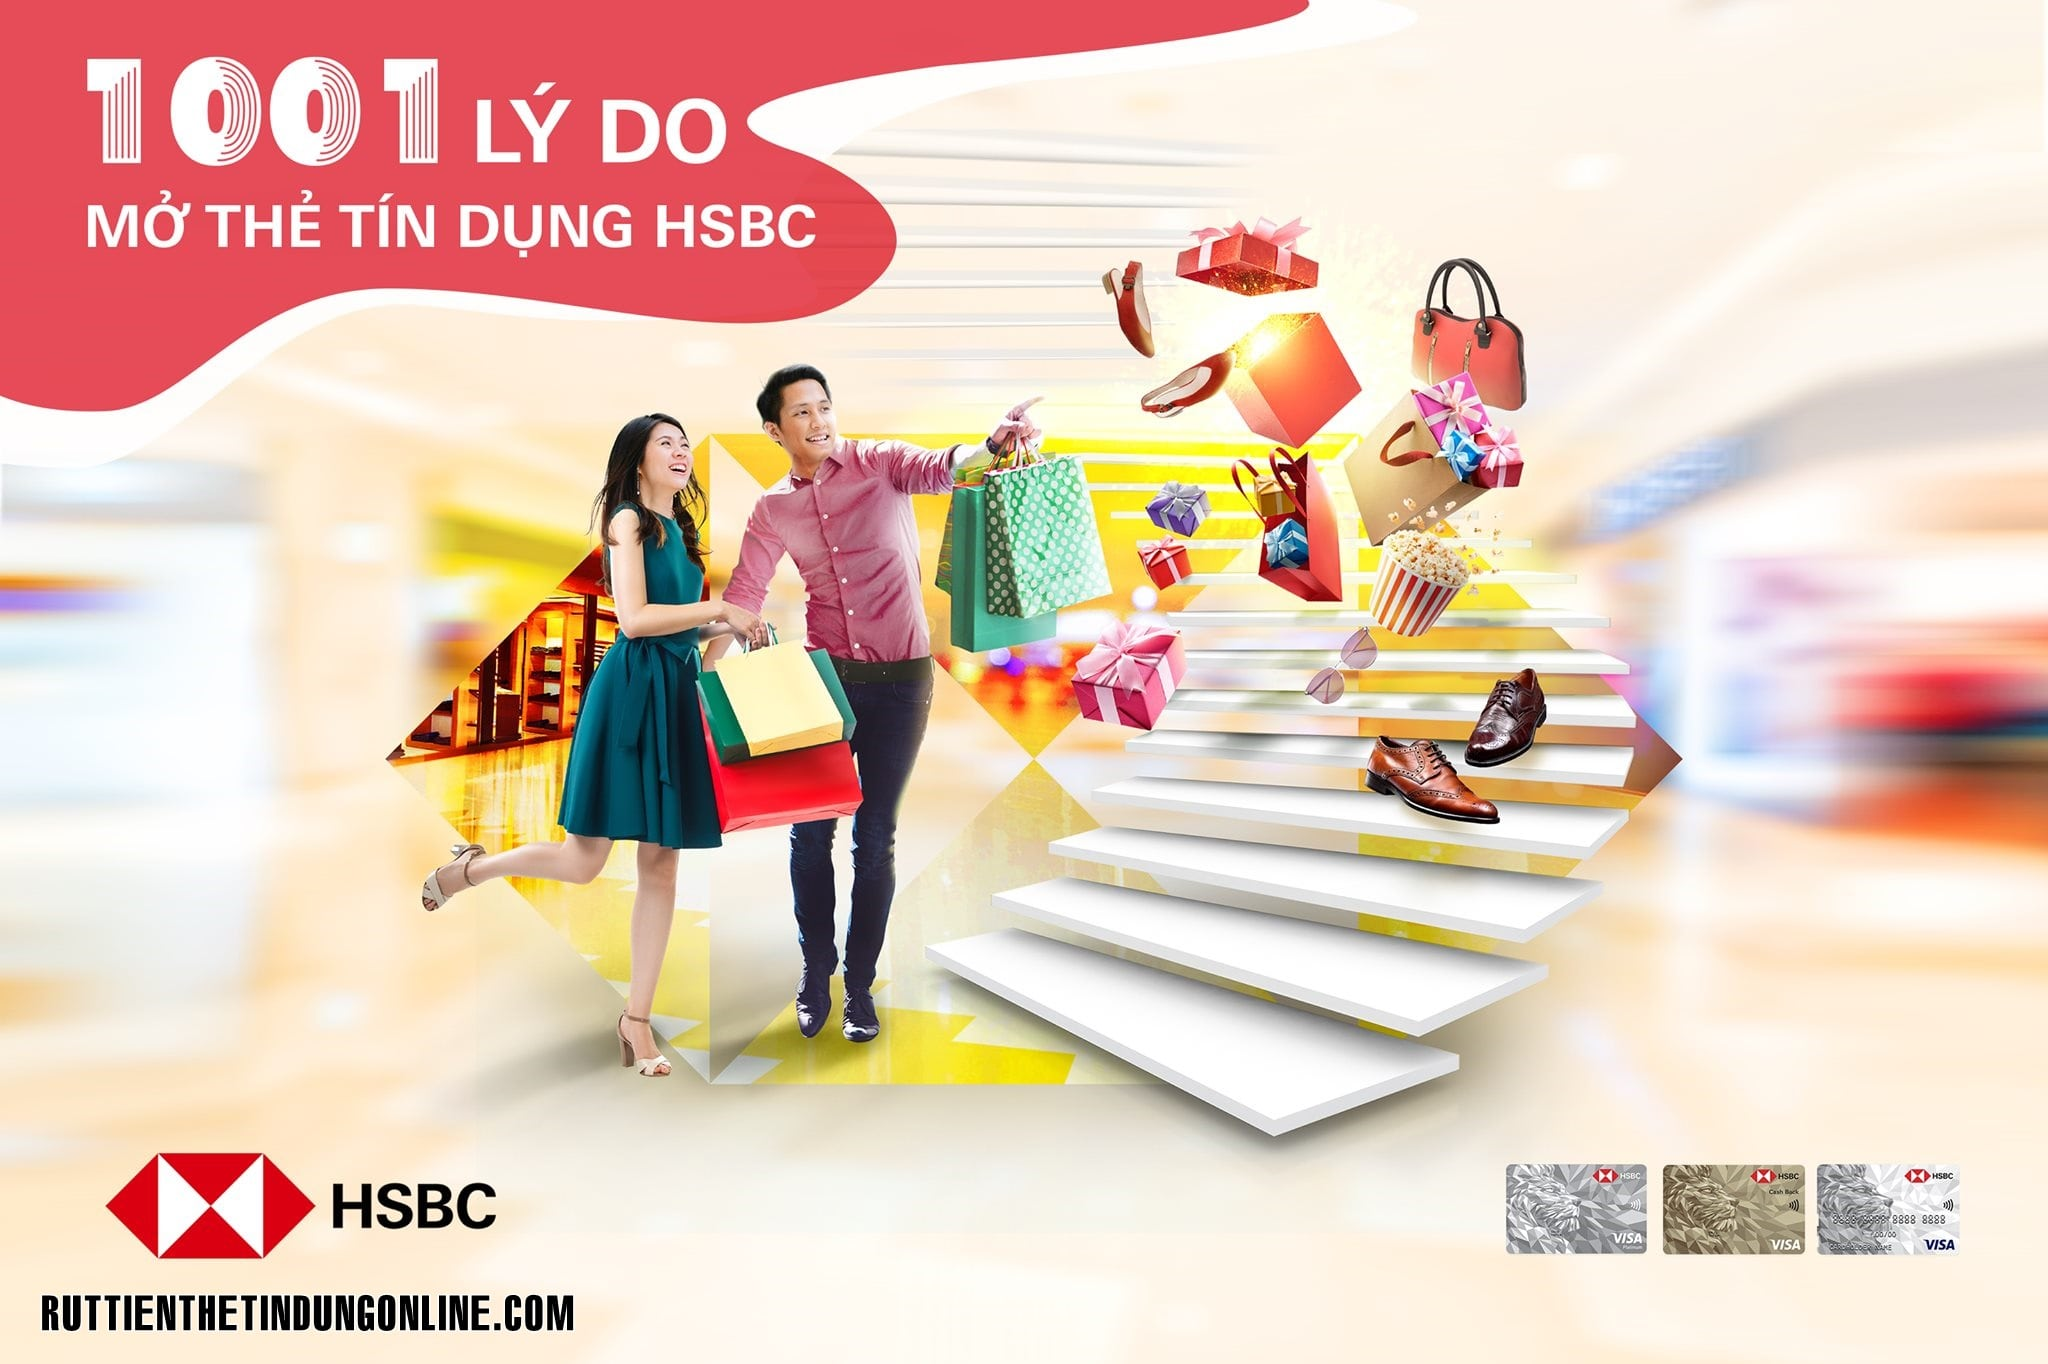 Han muc the tin dung hsbc